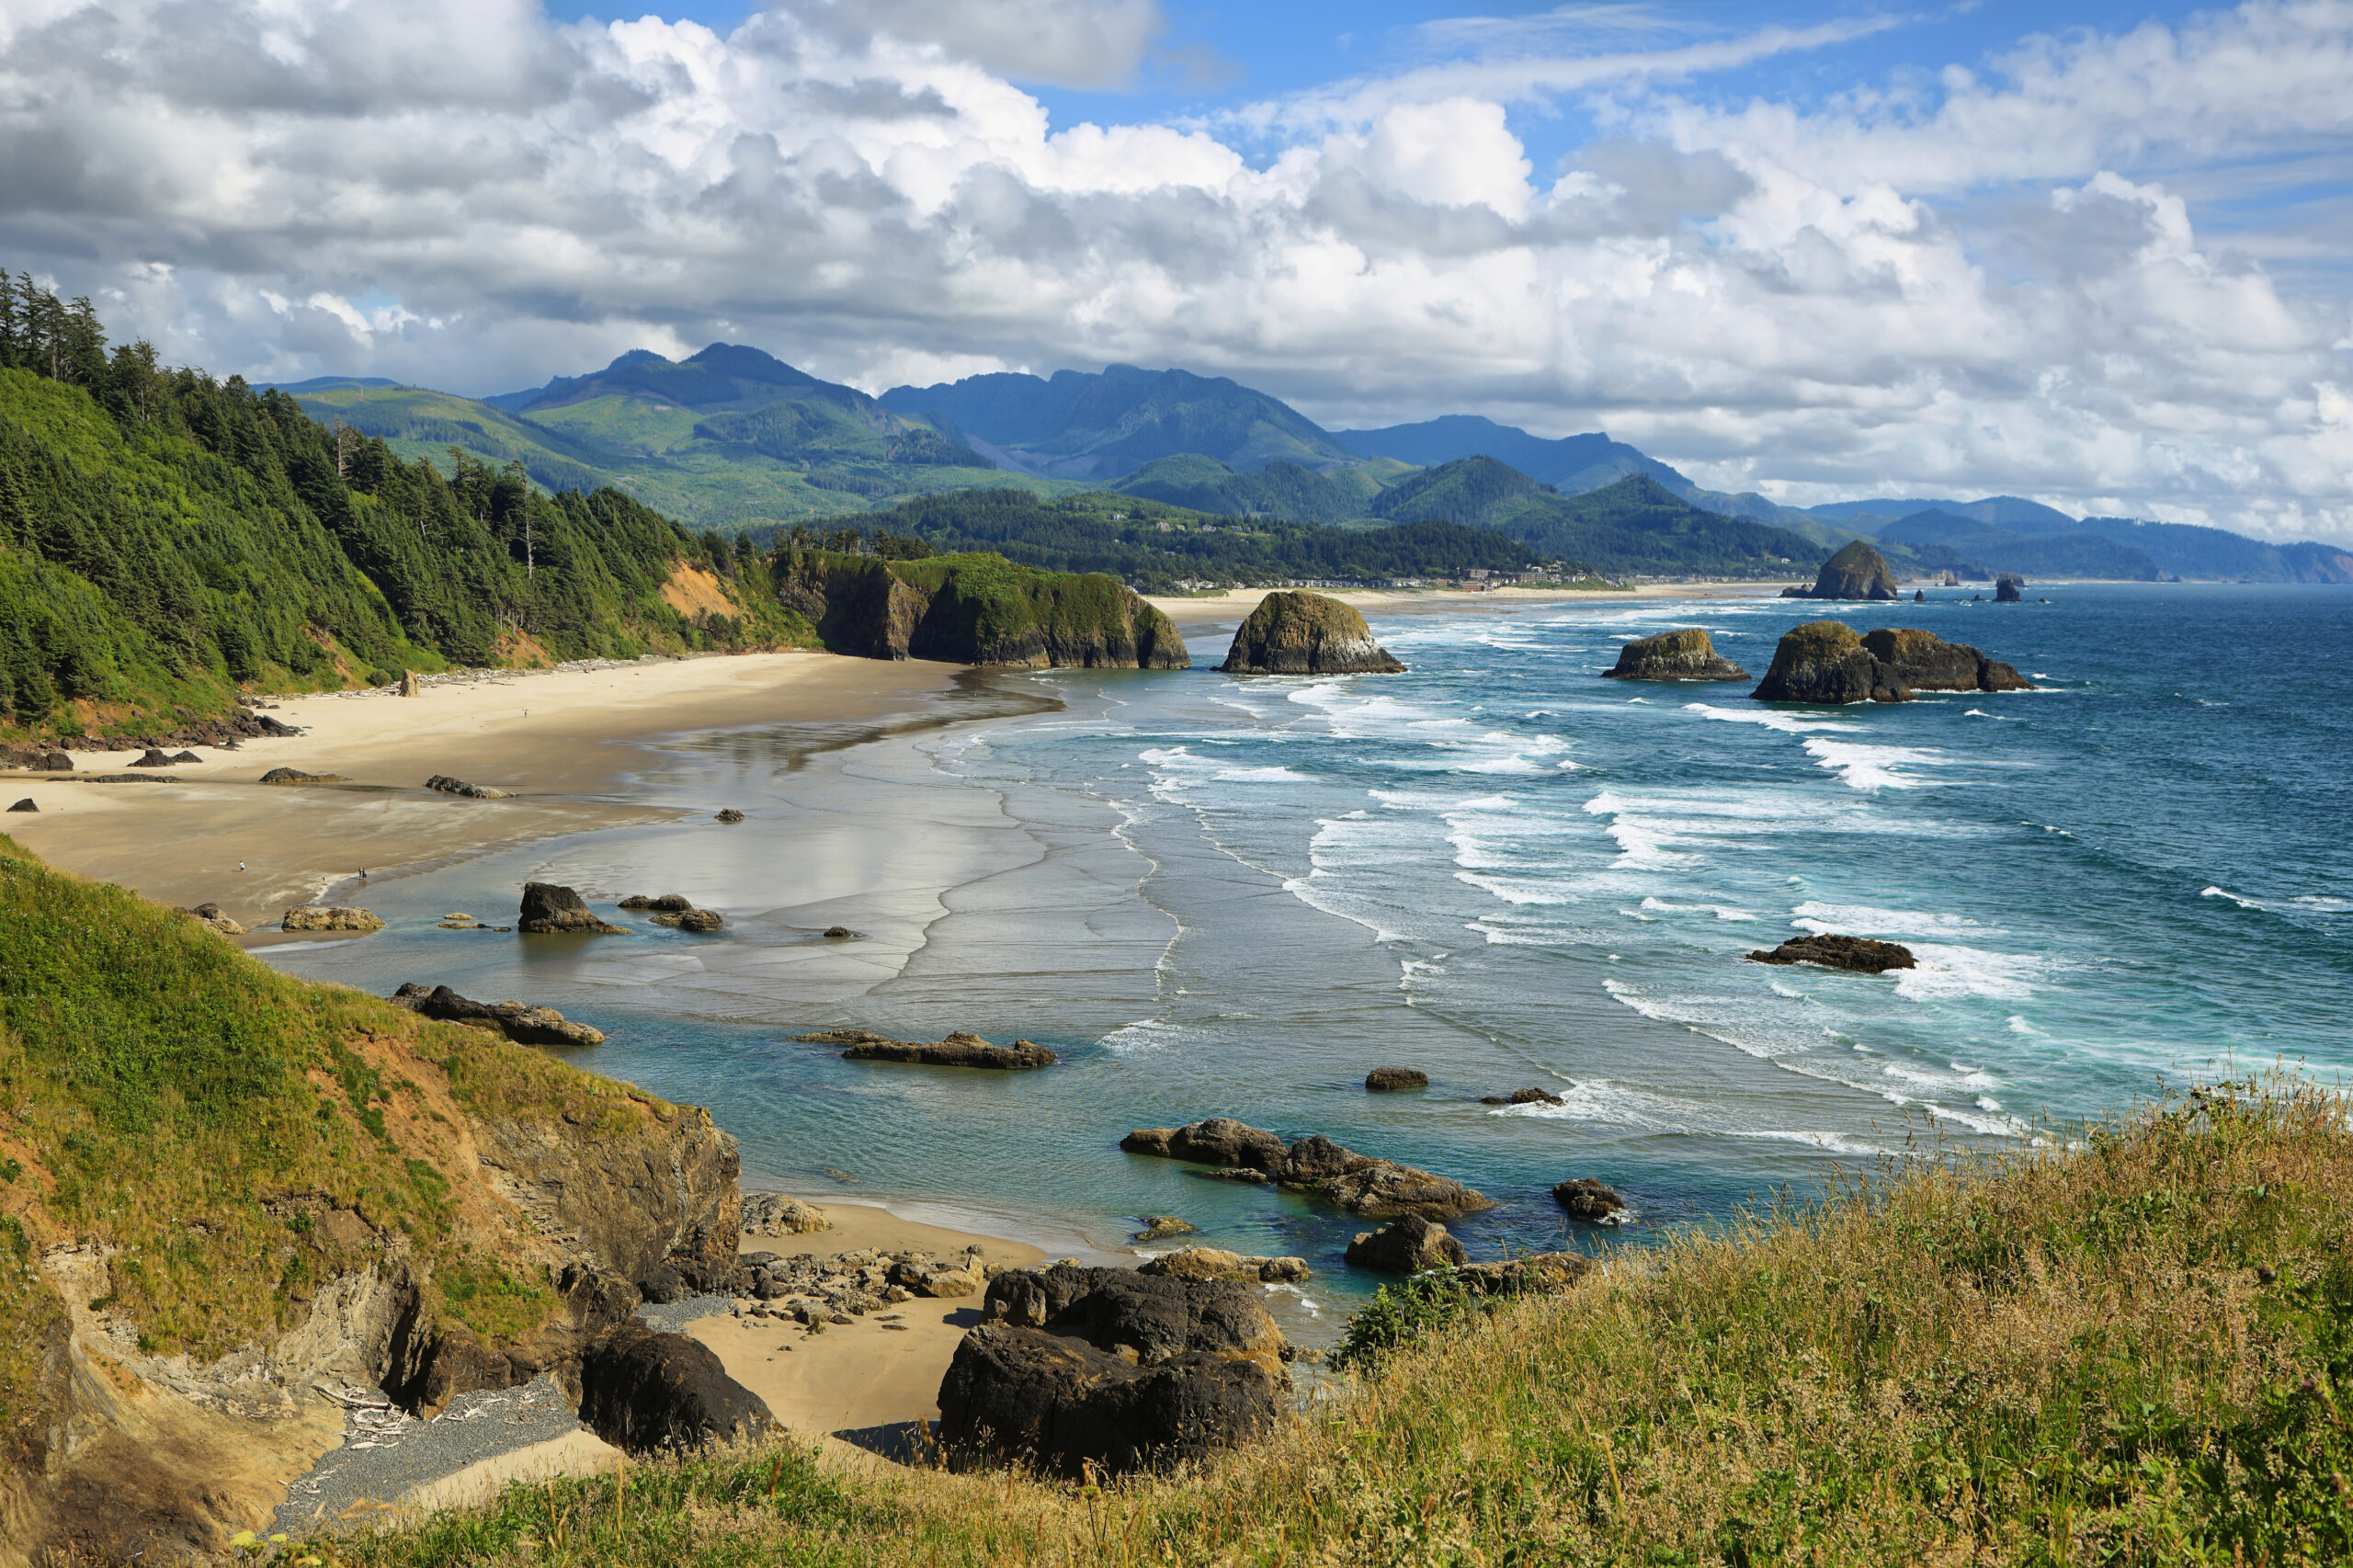 cannon beach as seen from above in manzanita, one of the best coastal towns in oregon